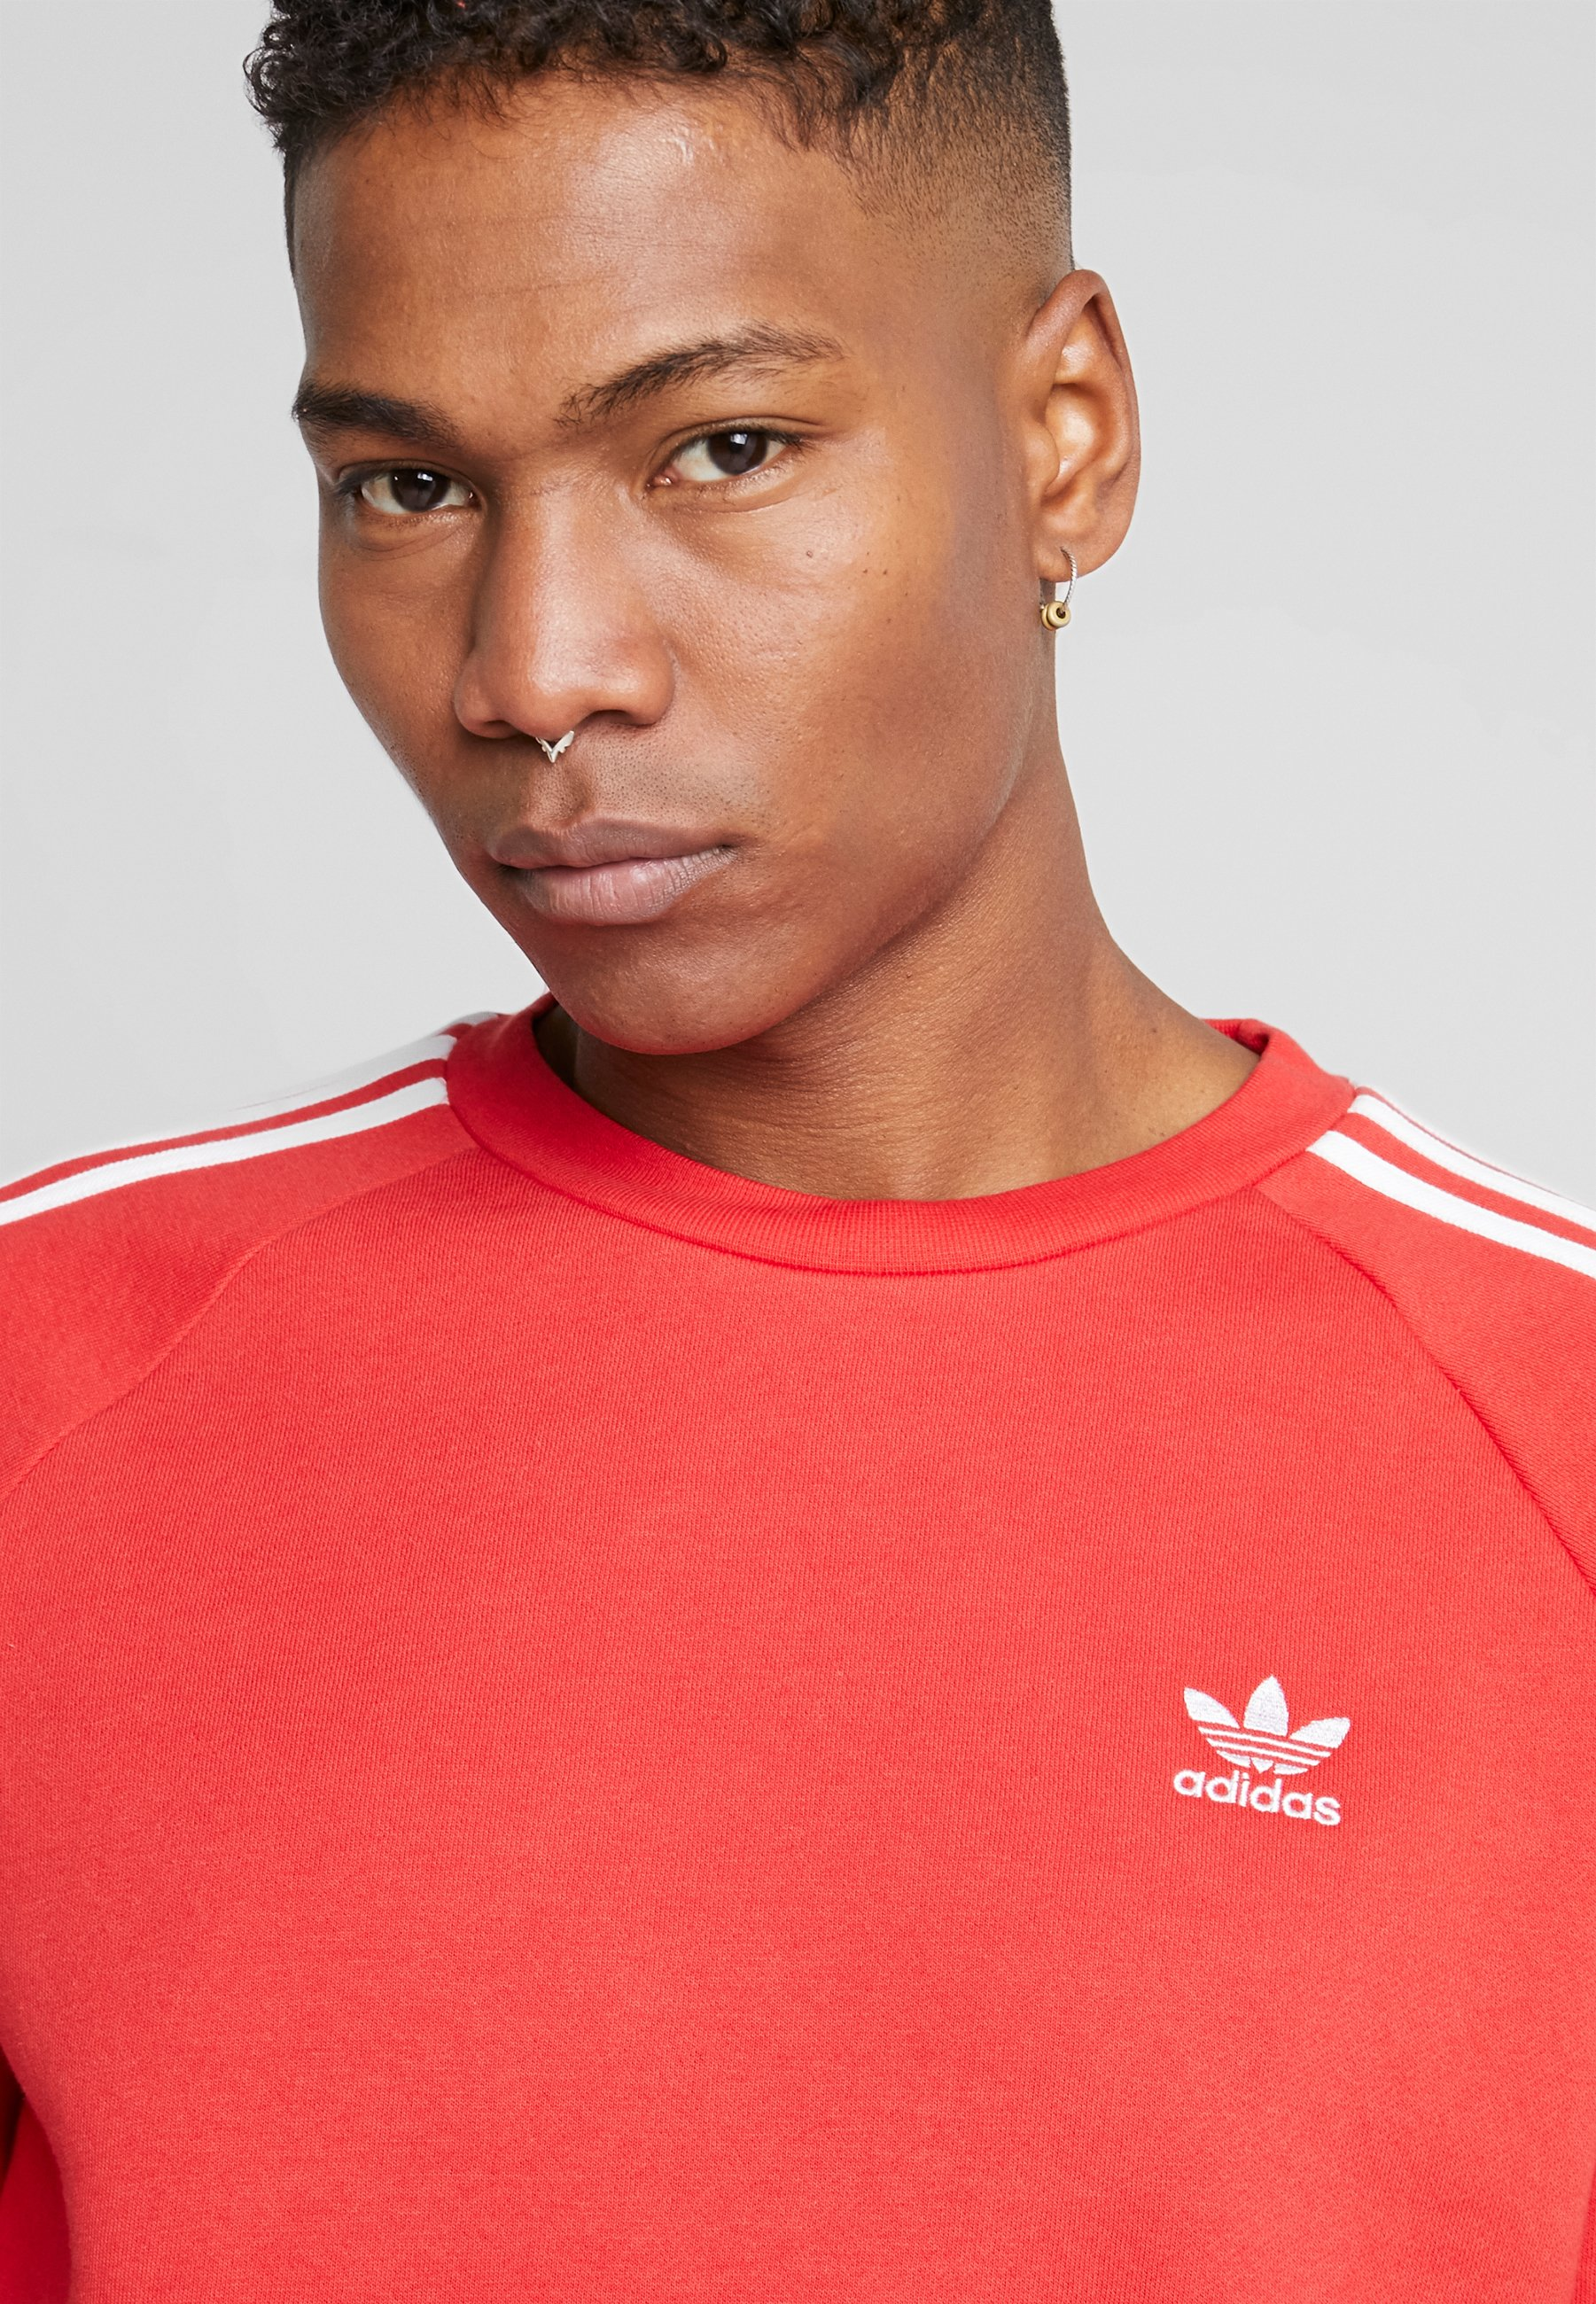 Adidas Originals Stripes Crew - Sweatshirt Lush Red